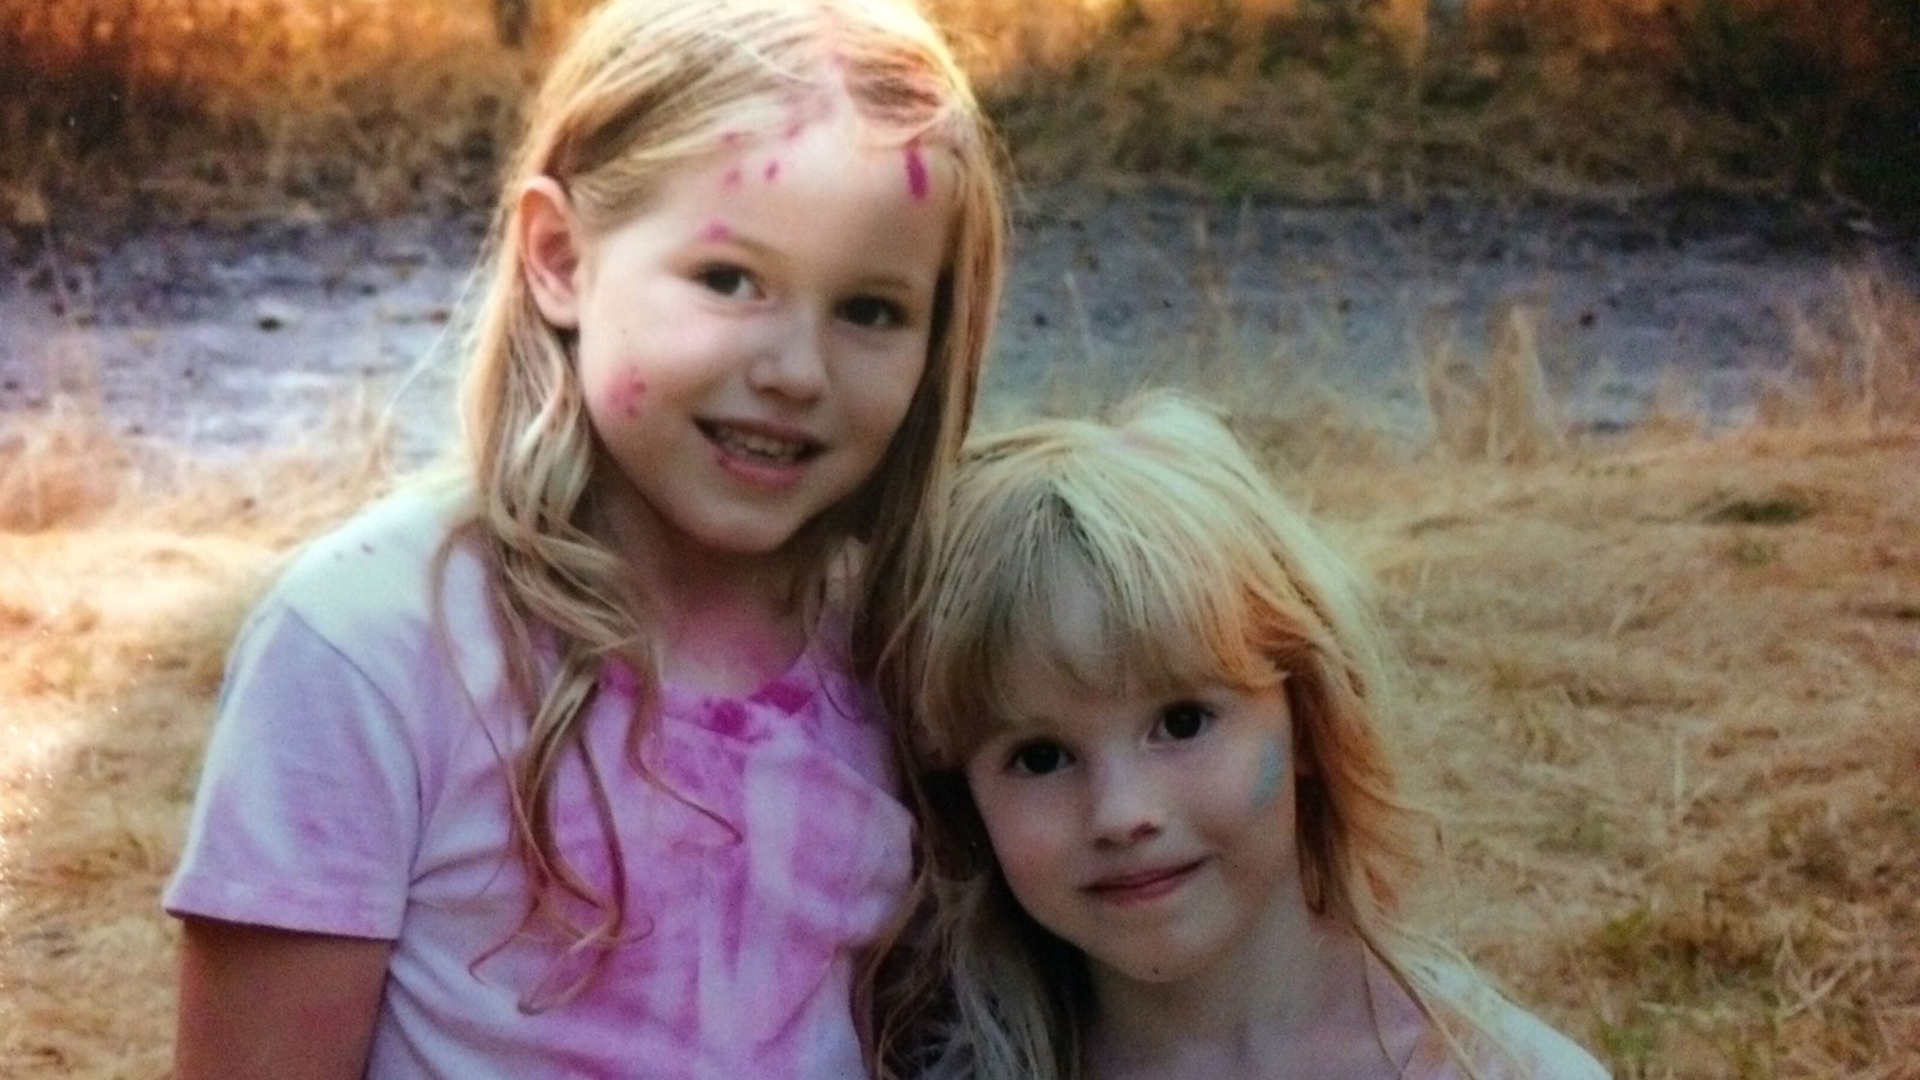 Leia and Caroline Carrico appear in a photo posted on the Humboldt County Sheriff's Office website on March 2, 2019.